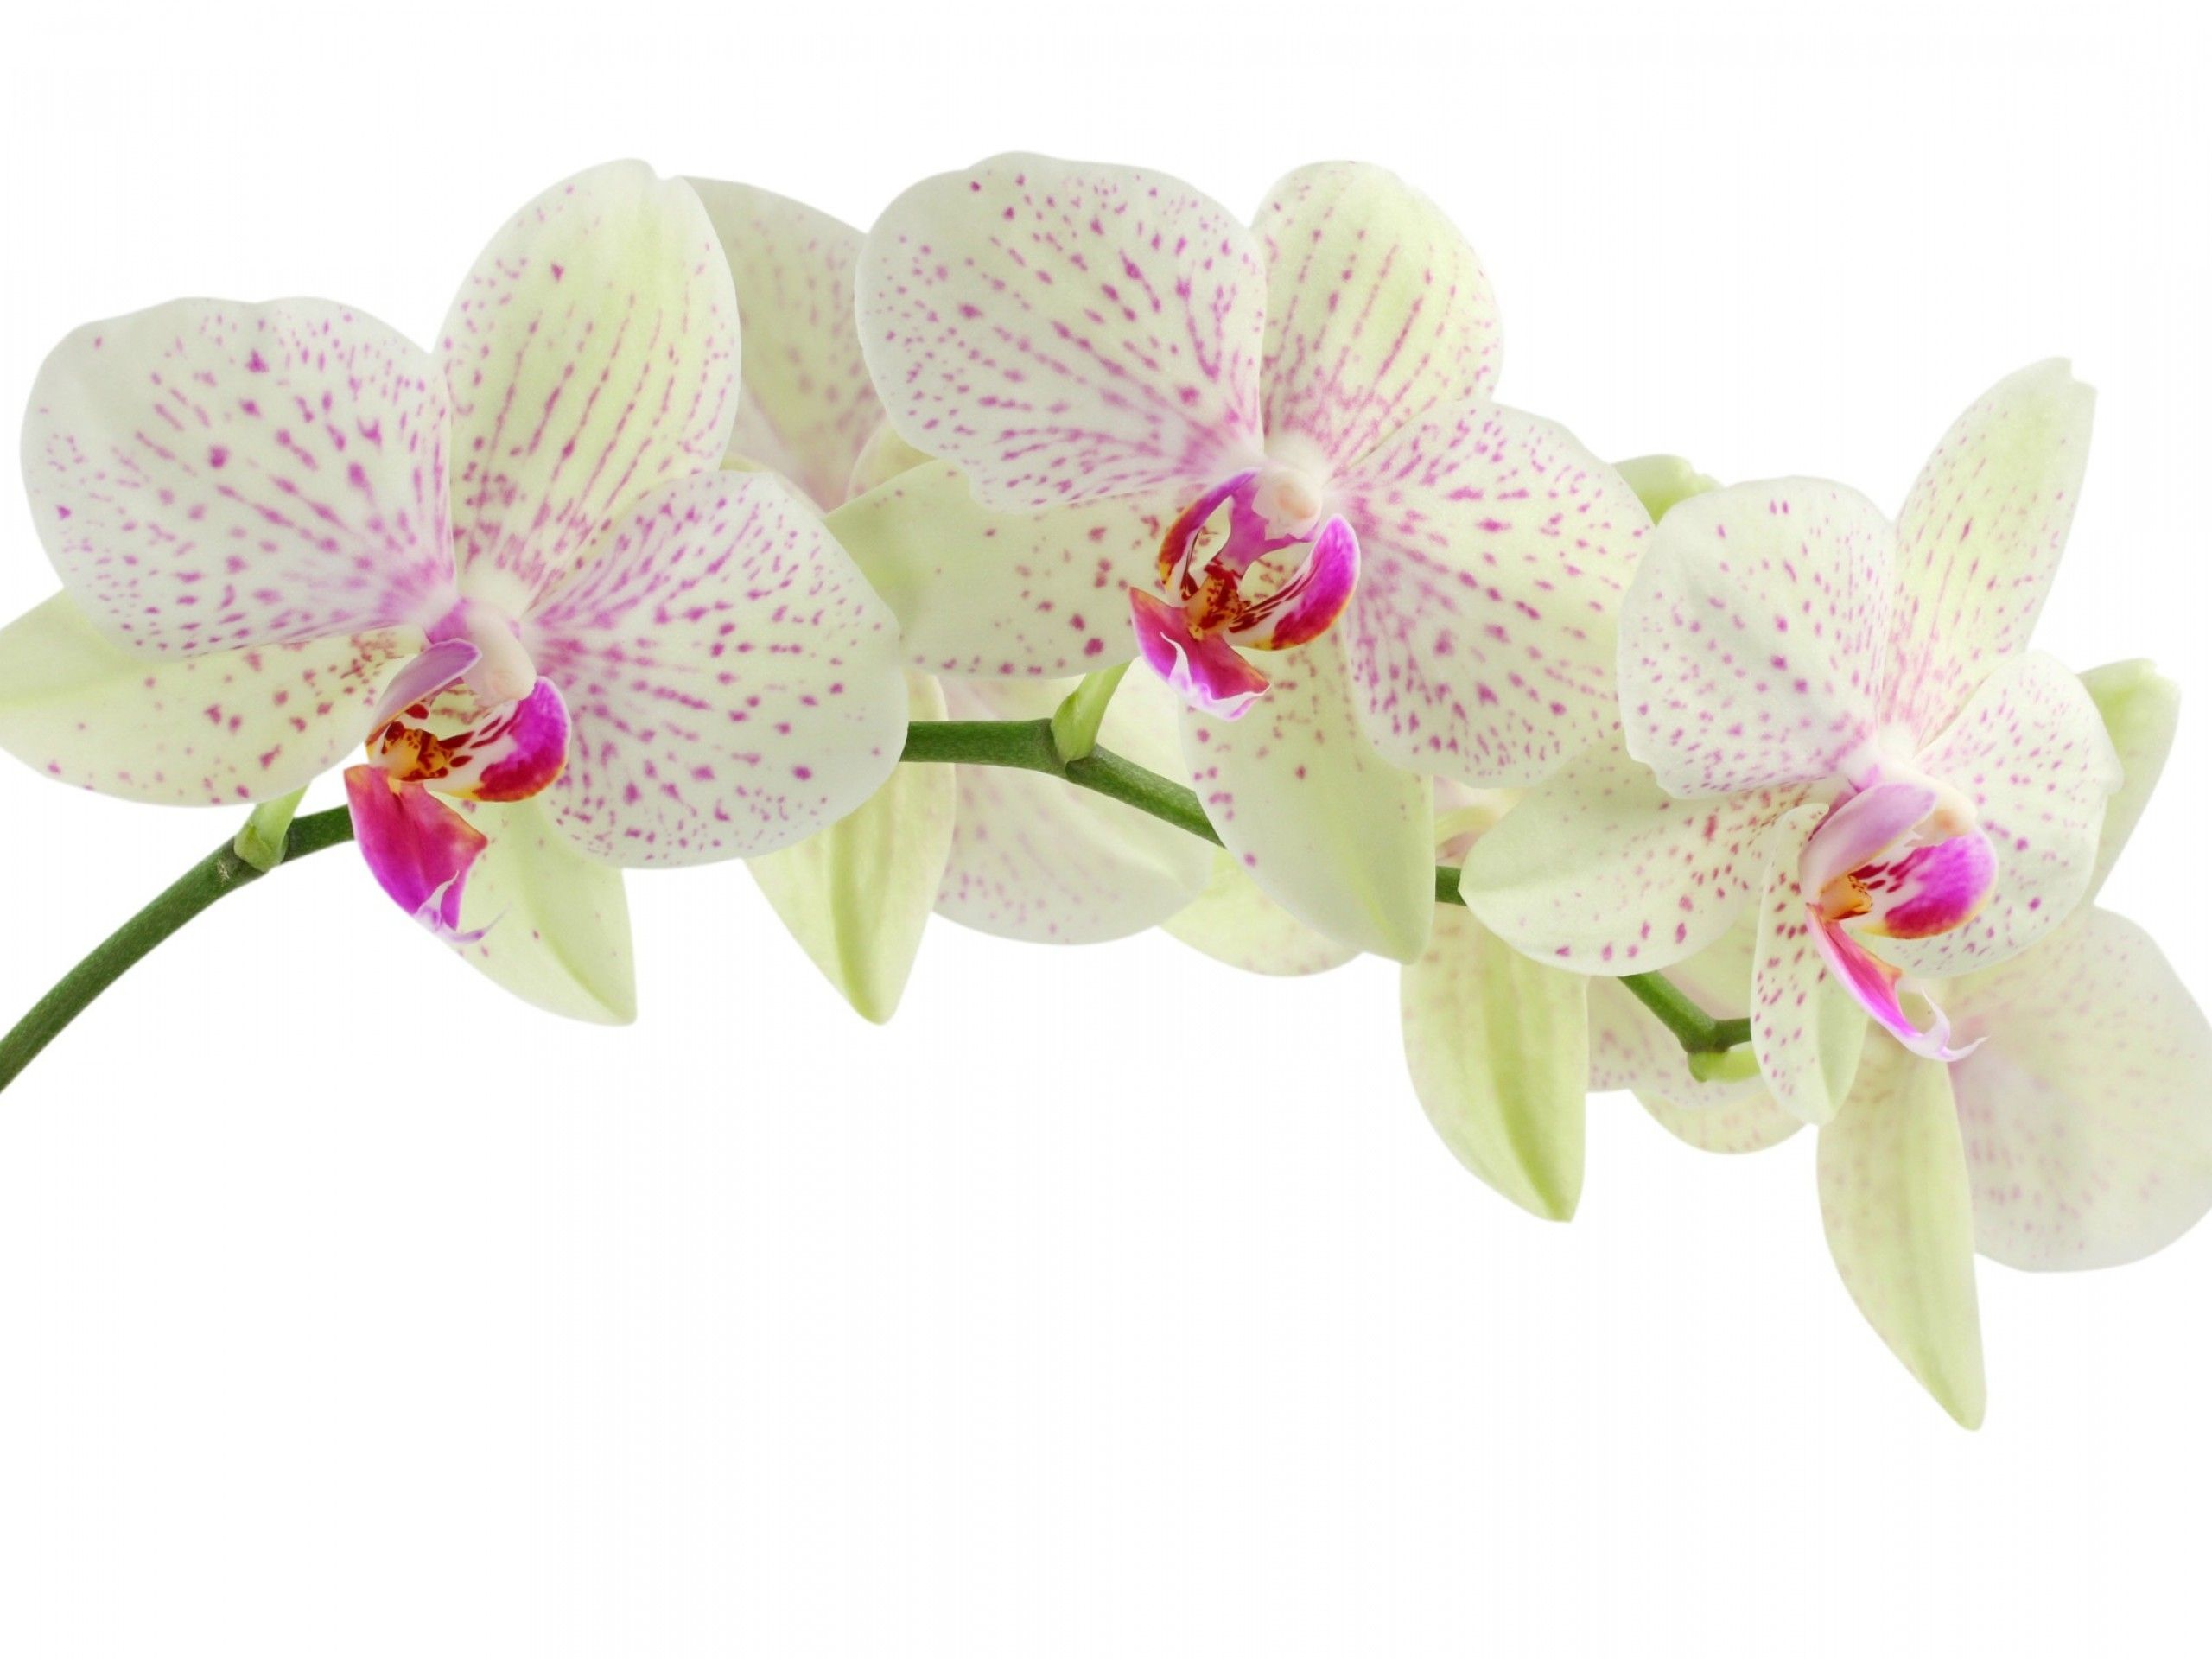 White Orchids Flowers Orchid Wallpaper Orchid Flower Flower Wallpaper